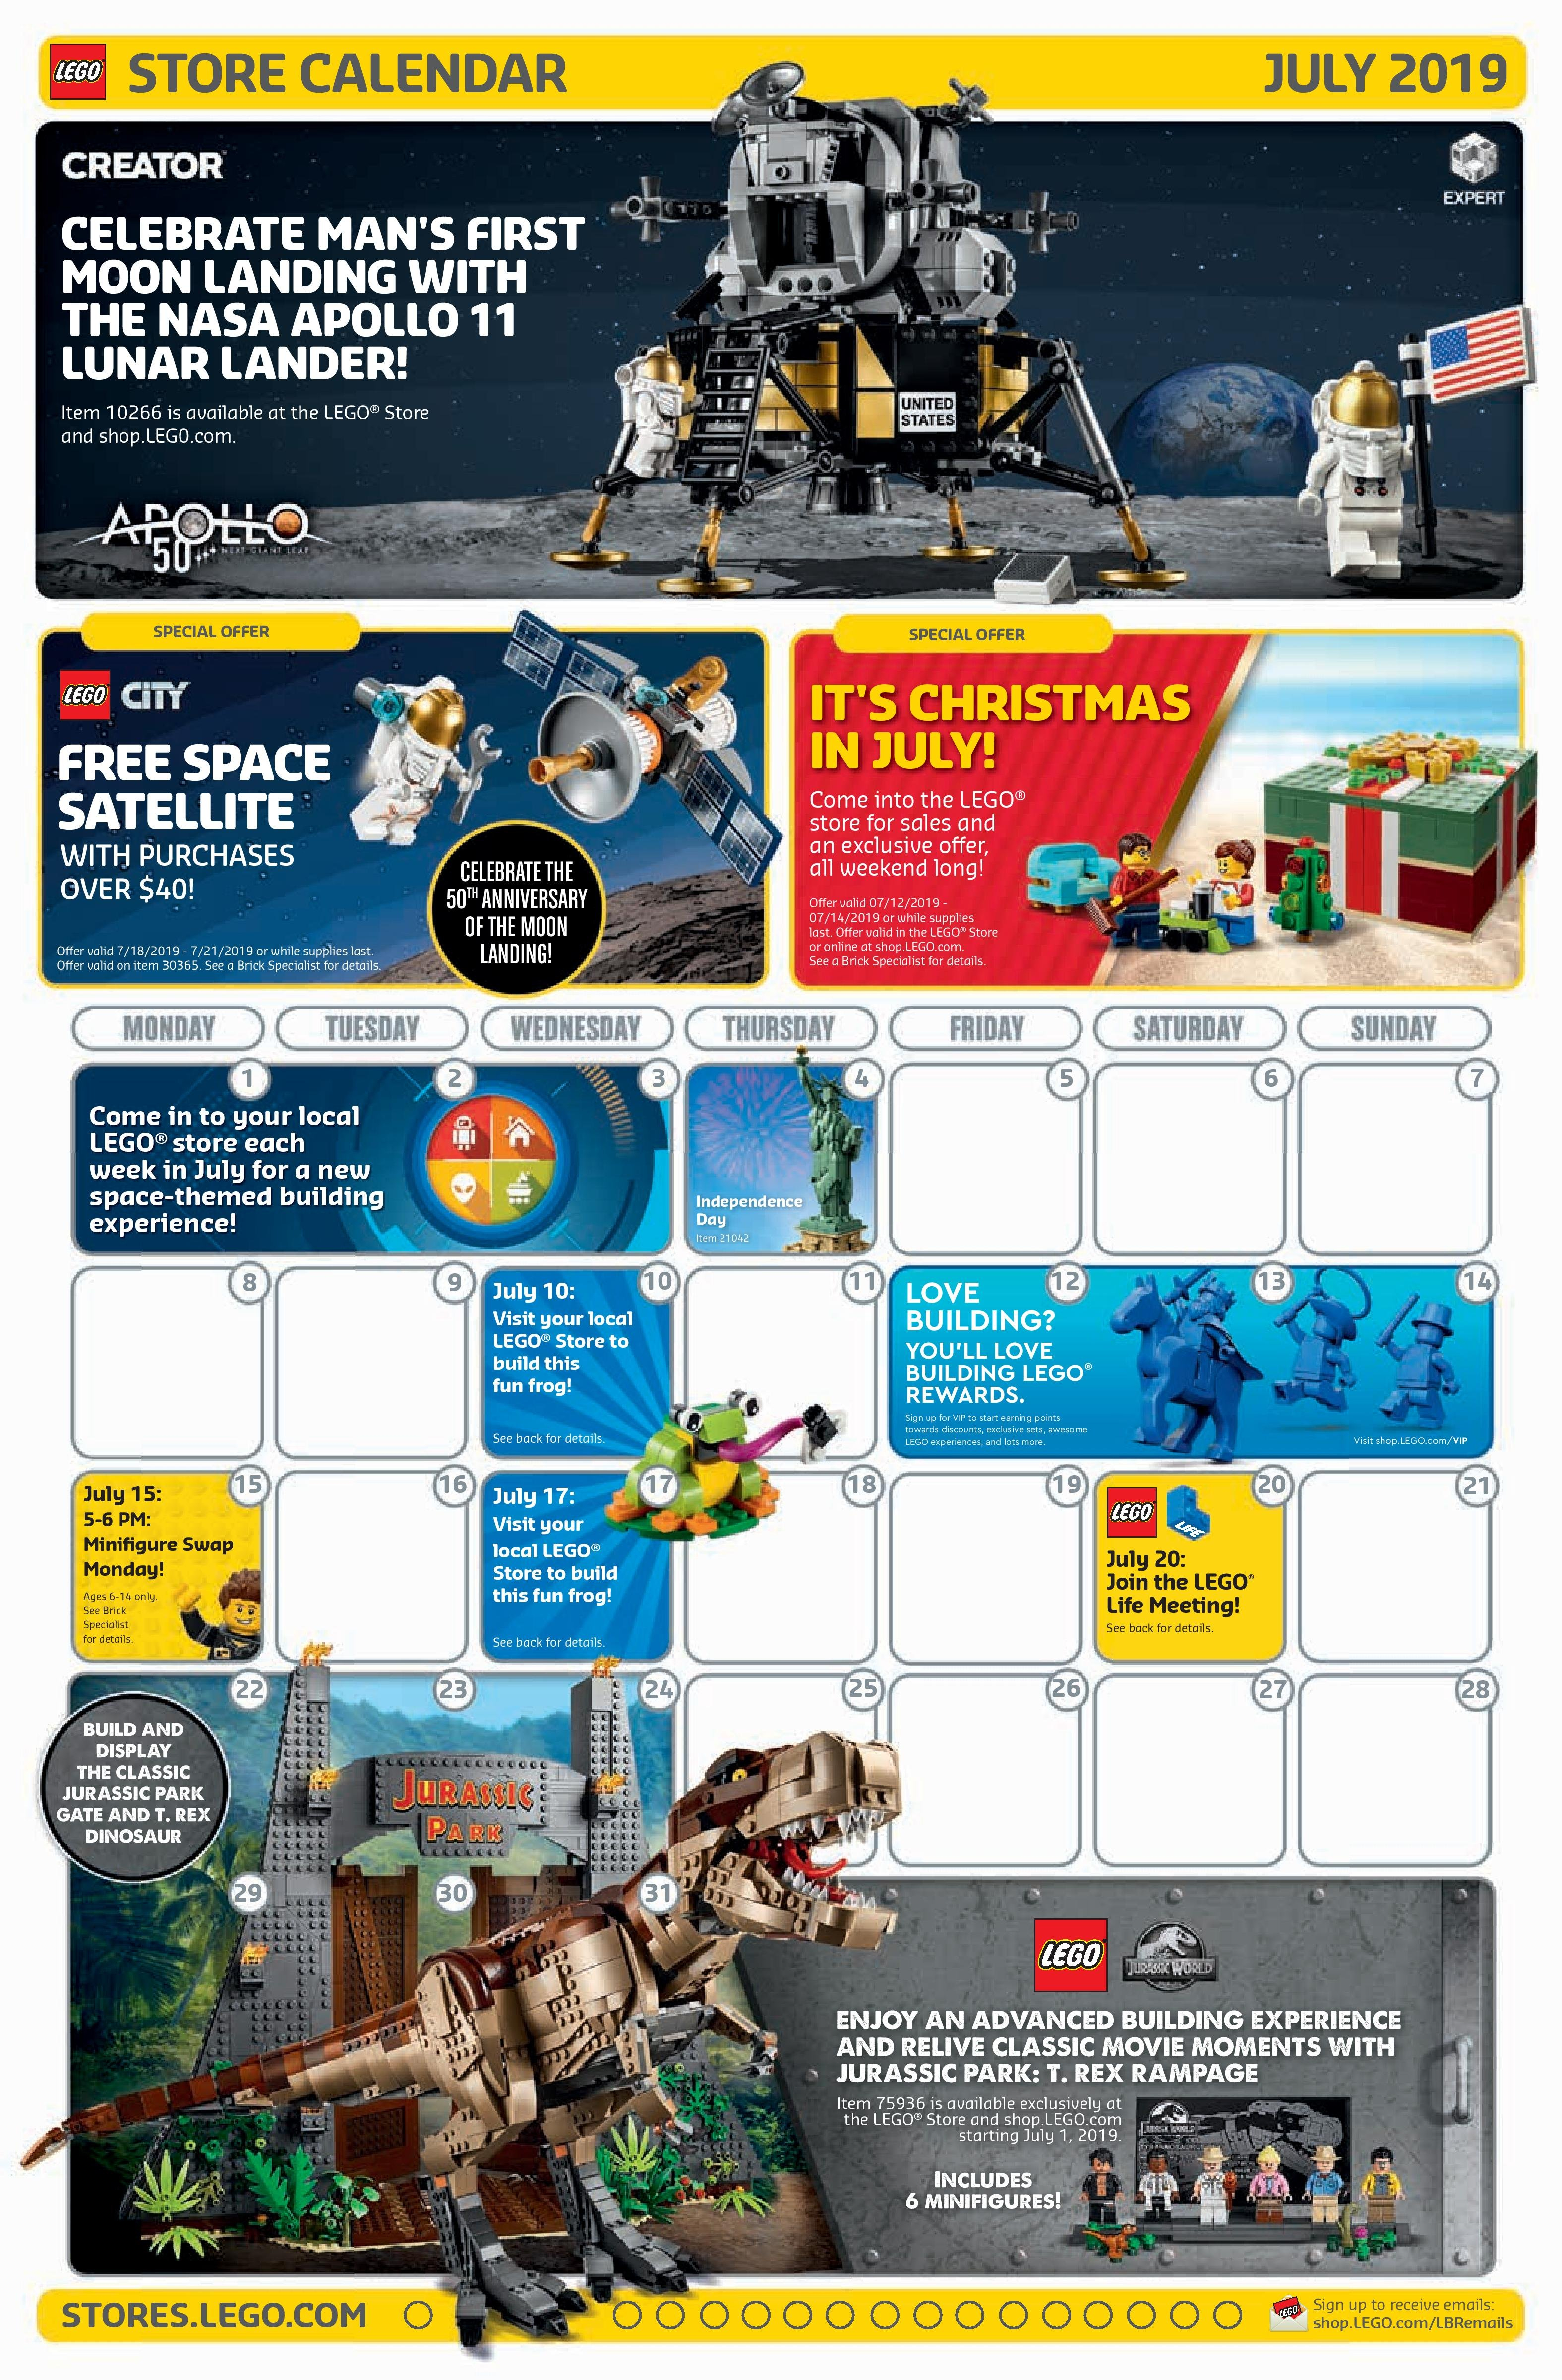 Lego July 2019 Store Calendar Promotions & Events - The Brick Fan Calendar 2019 In Stores